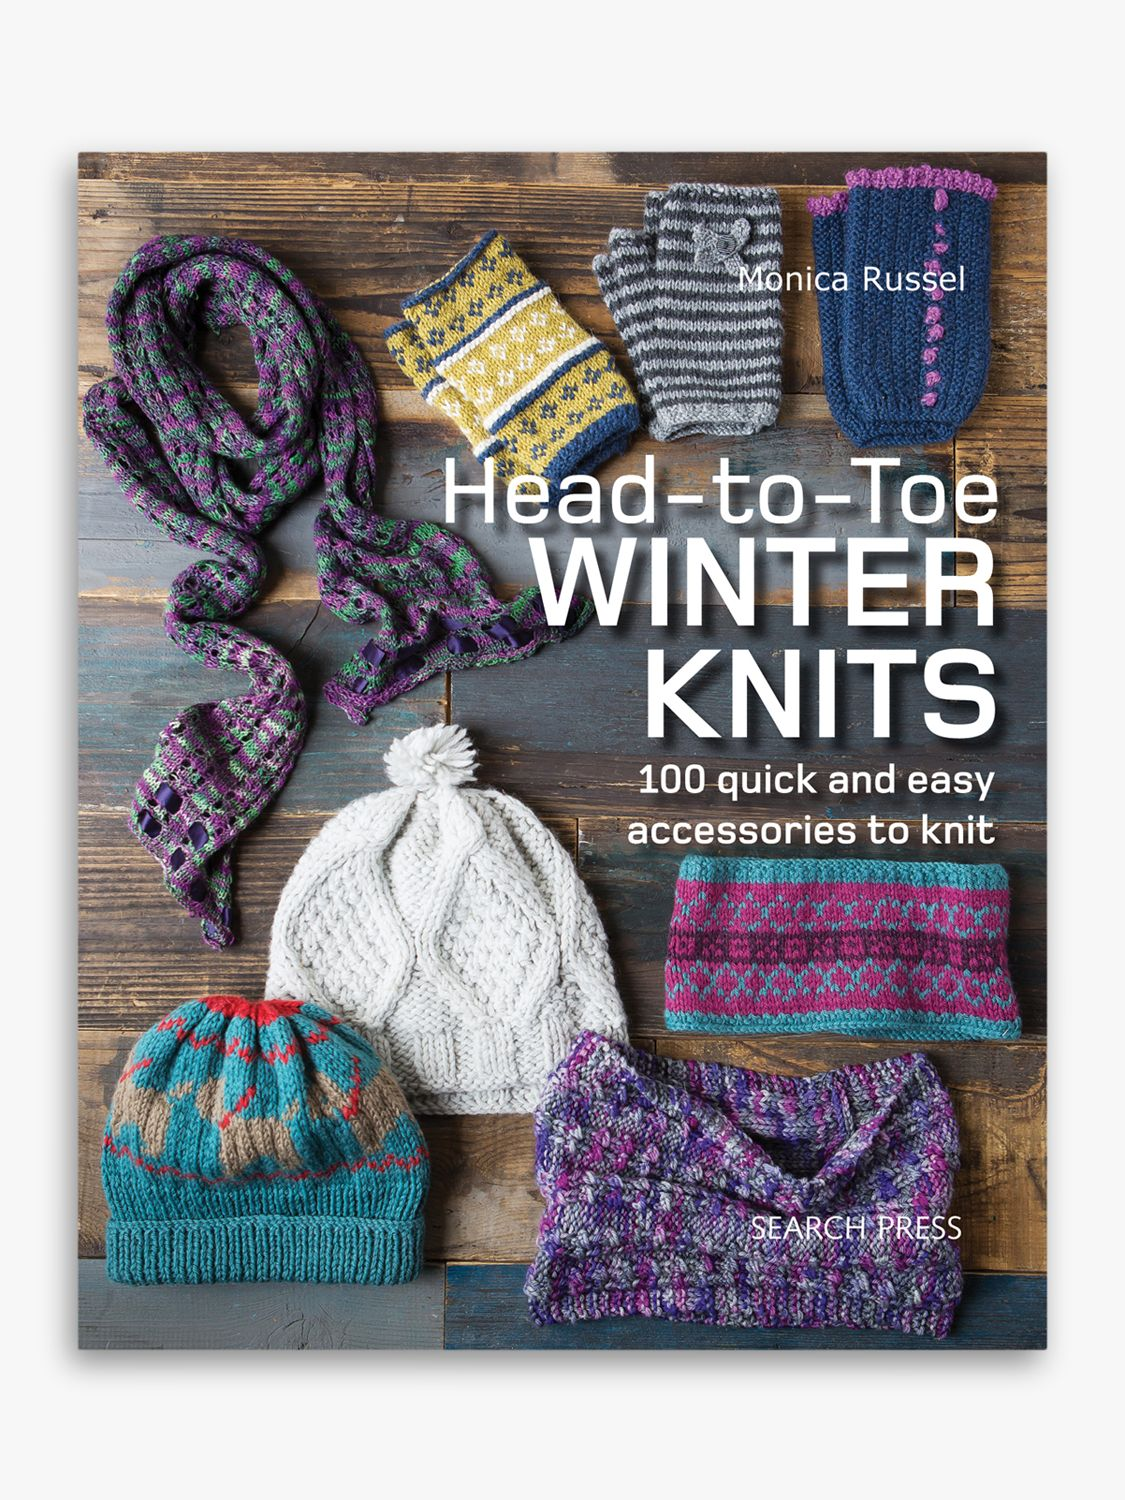 Search Press Winter Knits and Knitted Headbands by Monica Russel Book Bundle